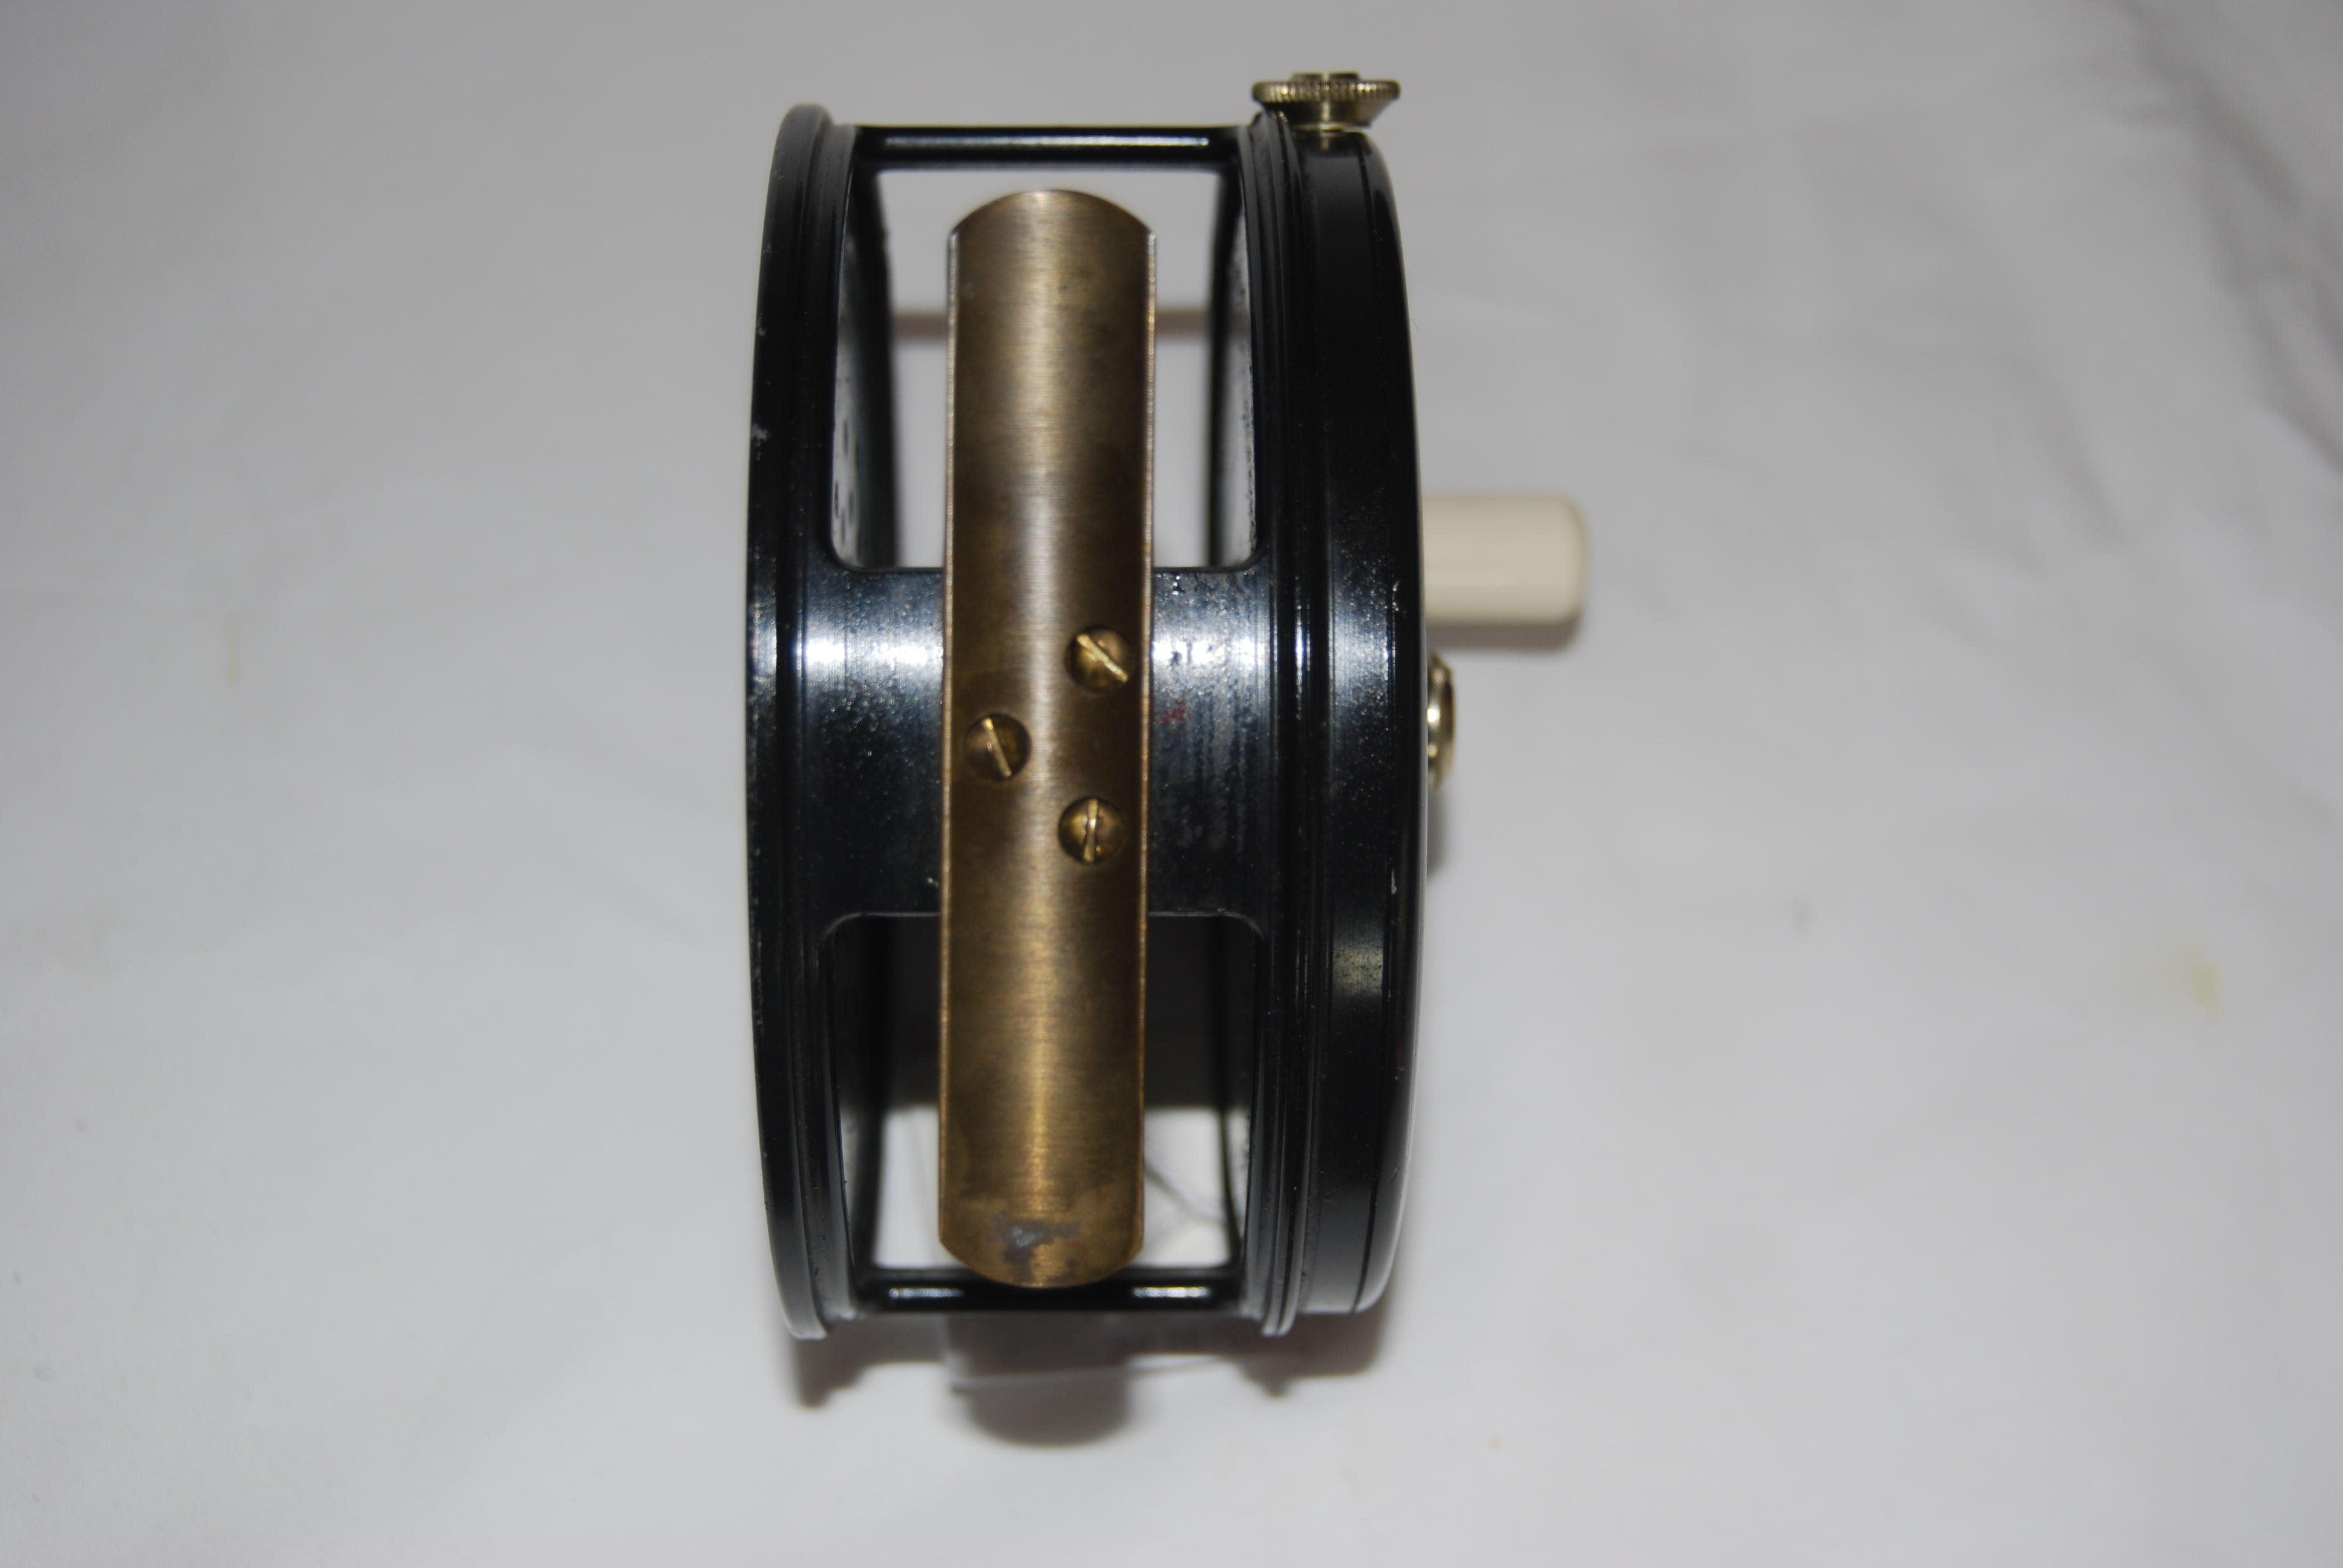 "Image for 4 1/4"" ALLCOCKS [JW YOUNG]  ""PERFECT-TYPE"" SALMON REEL. No Line Guard.  RHW.  Long smooth brass foot fastened with 3 screws [3 1/4""]; Adjustable Dual Check  Mechanism; Ball-bearing Race; White Xylonite Knob; Totally unmarked on frame or internally.  13 ¾ oz. Cap. #10/11/12 Spey + backing. 1930'S."